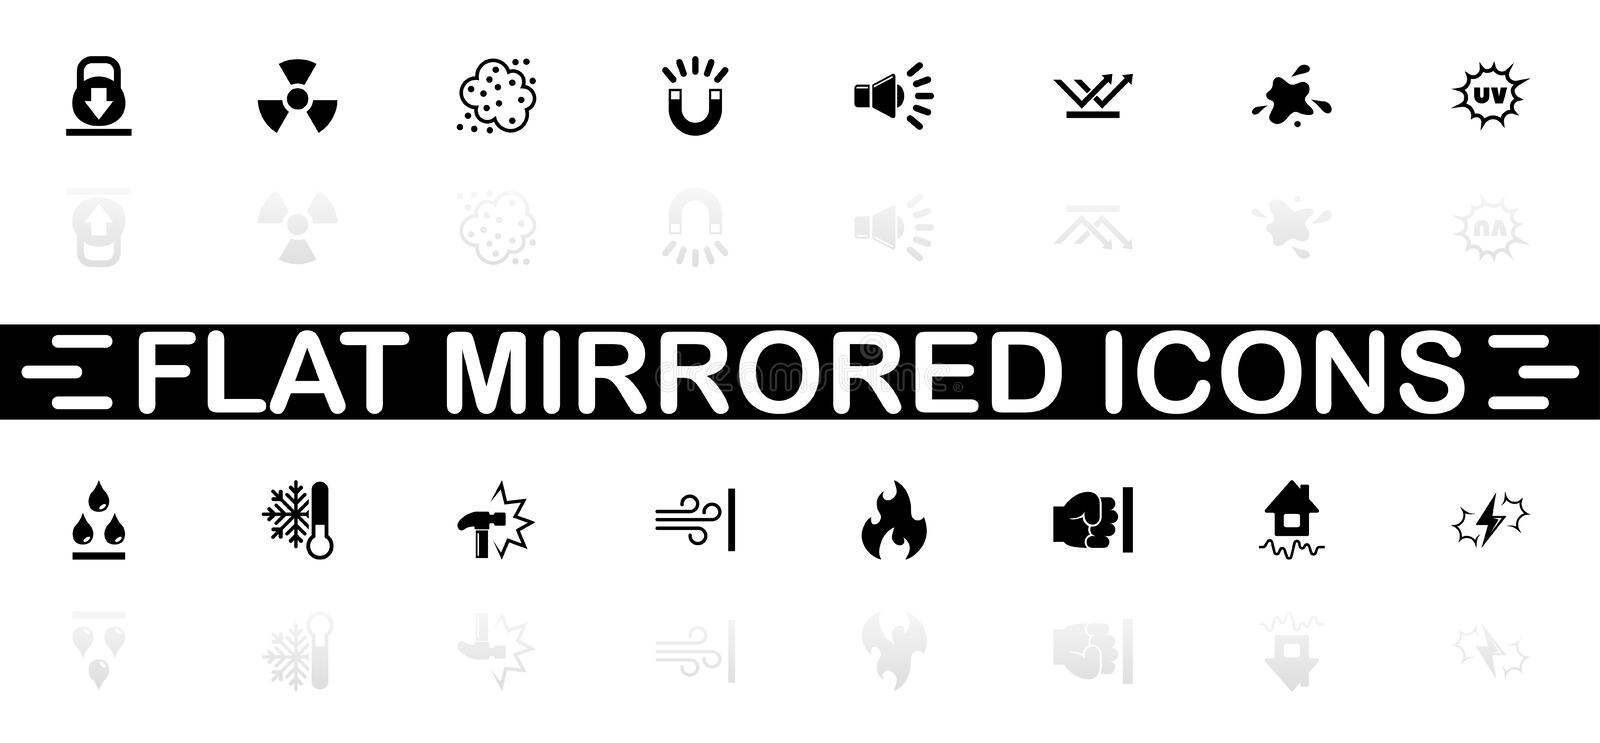 Influence - Flat Vector Icons. Influence icons - Black symbol on white background. Simple illustration. Flat Vector Icon. Mirror Reflection Shadow. Can be used vector illustration